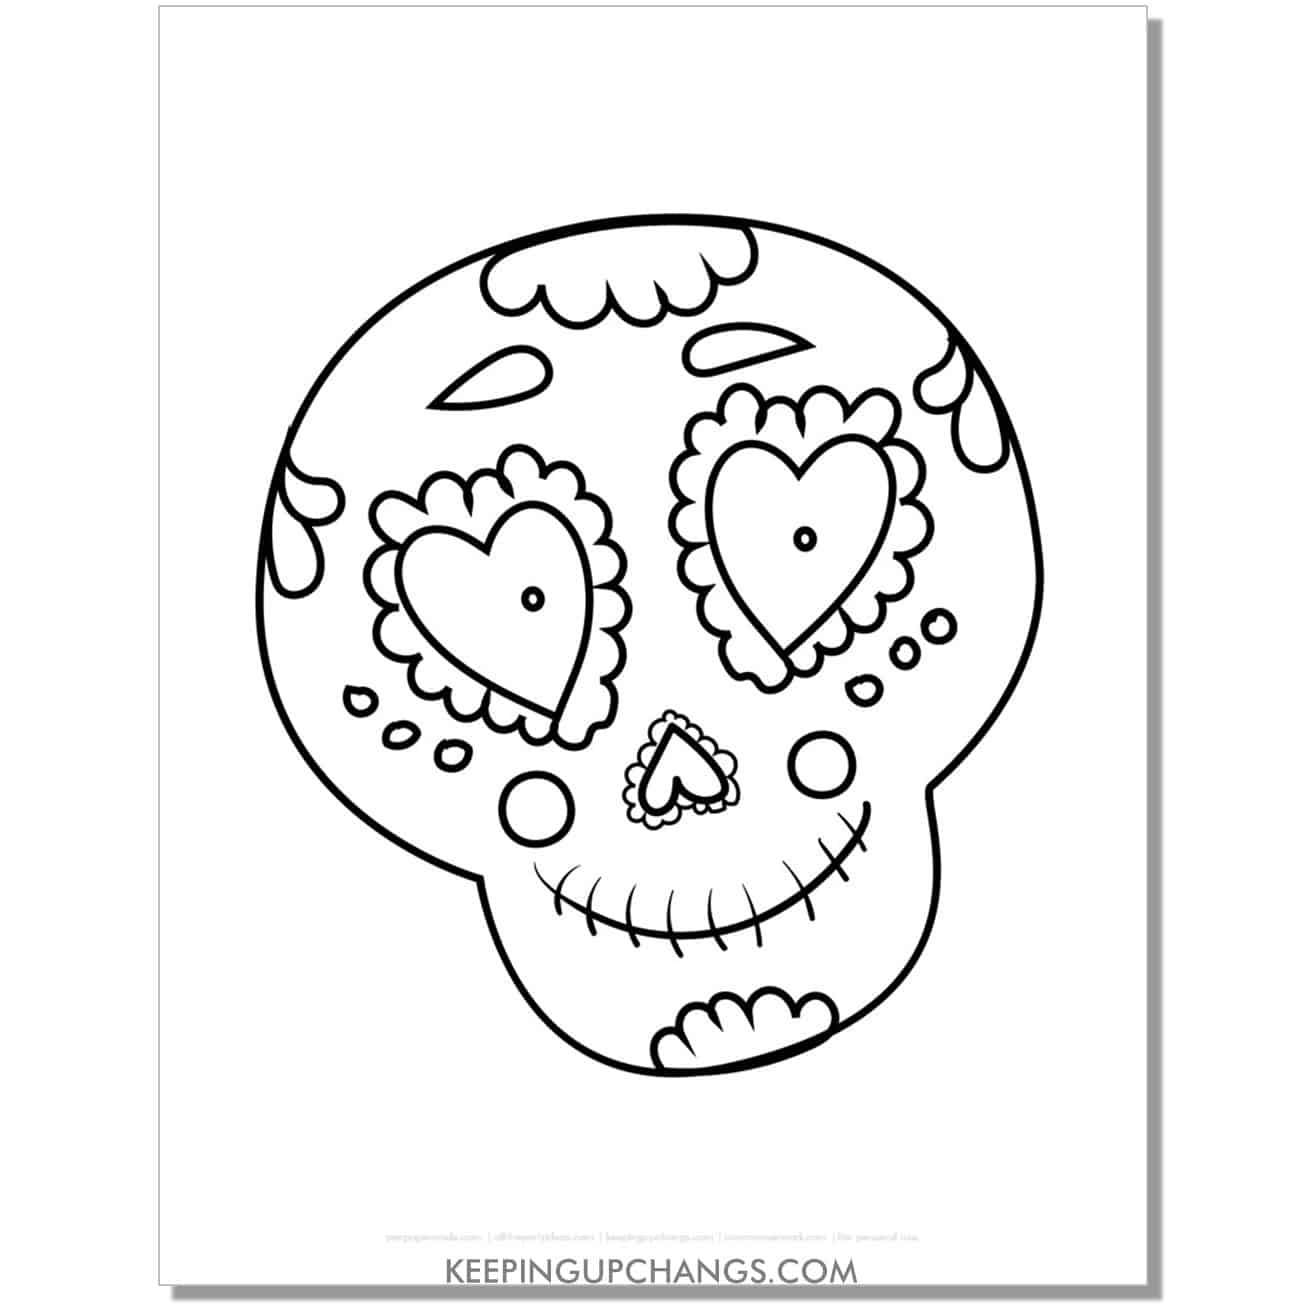 free sugar skull male man halloween coloring page for kids.